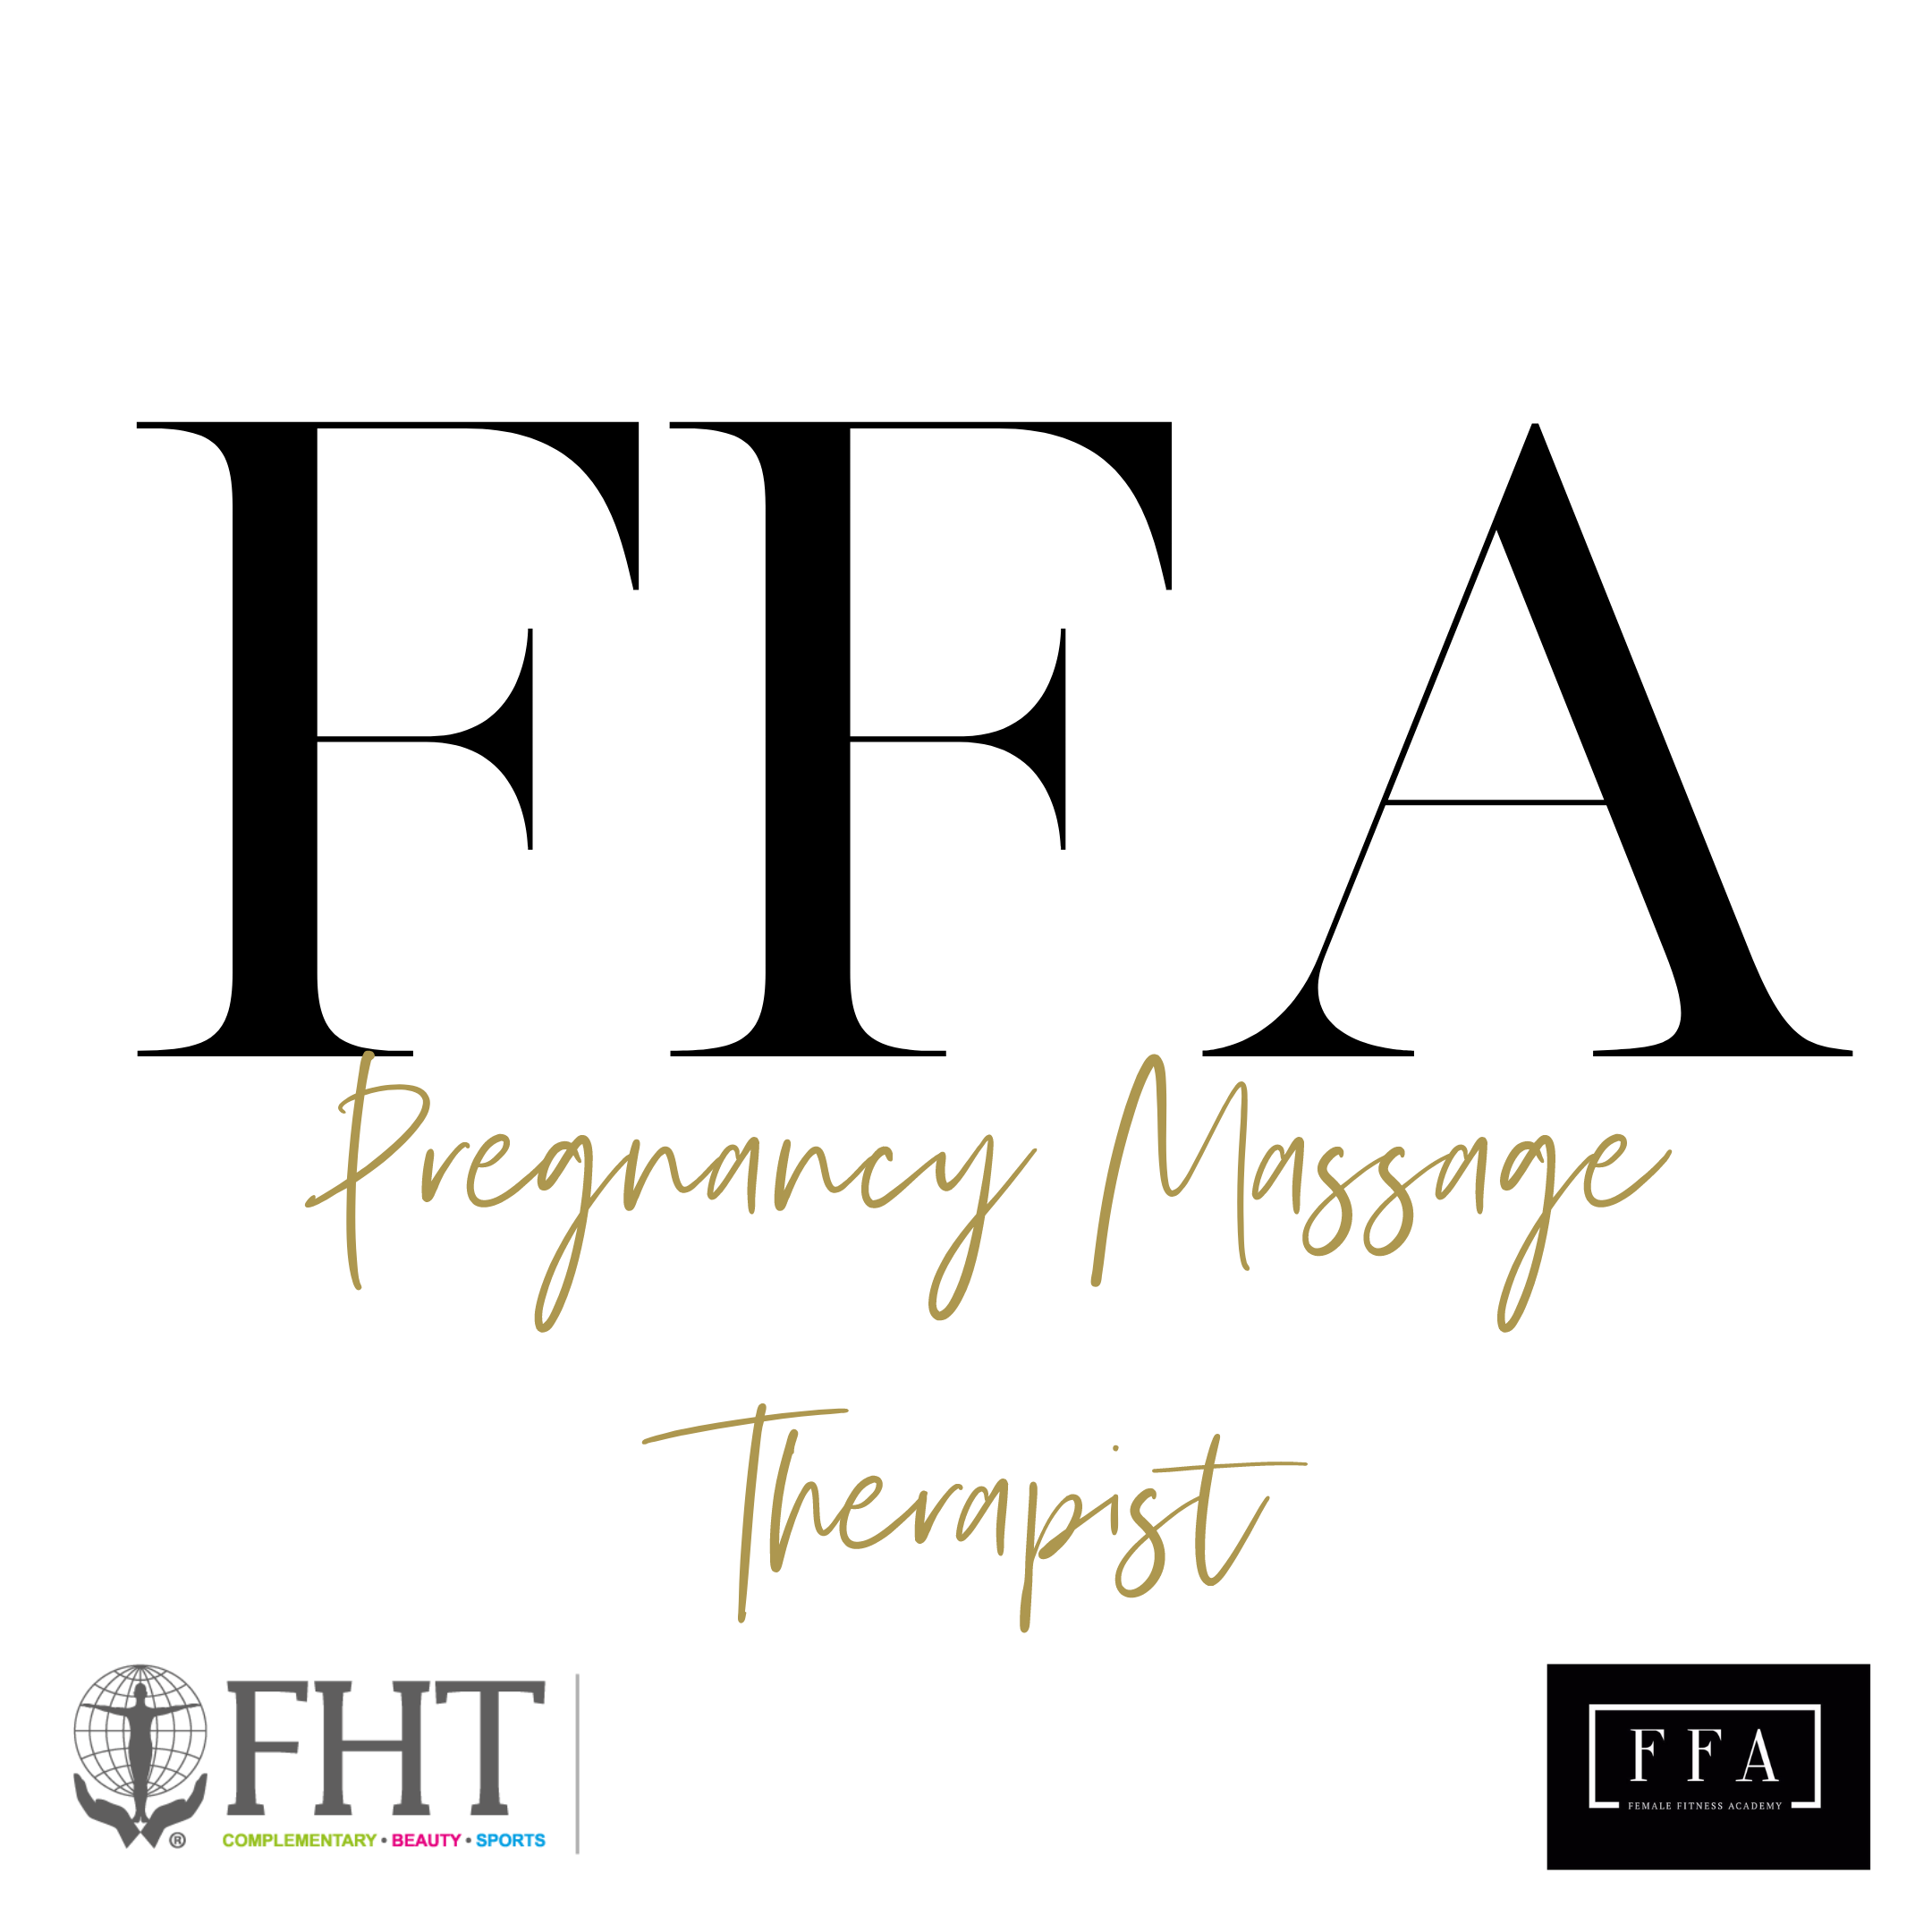 Approved Pregnancy Massage (2)